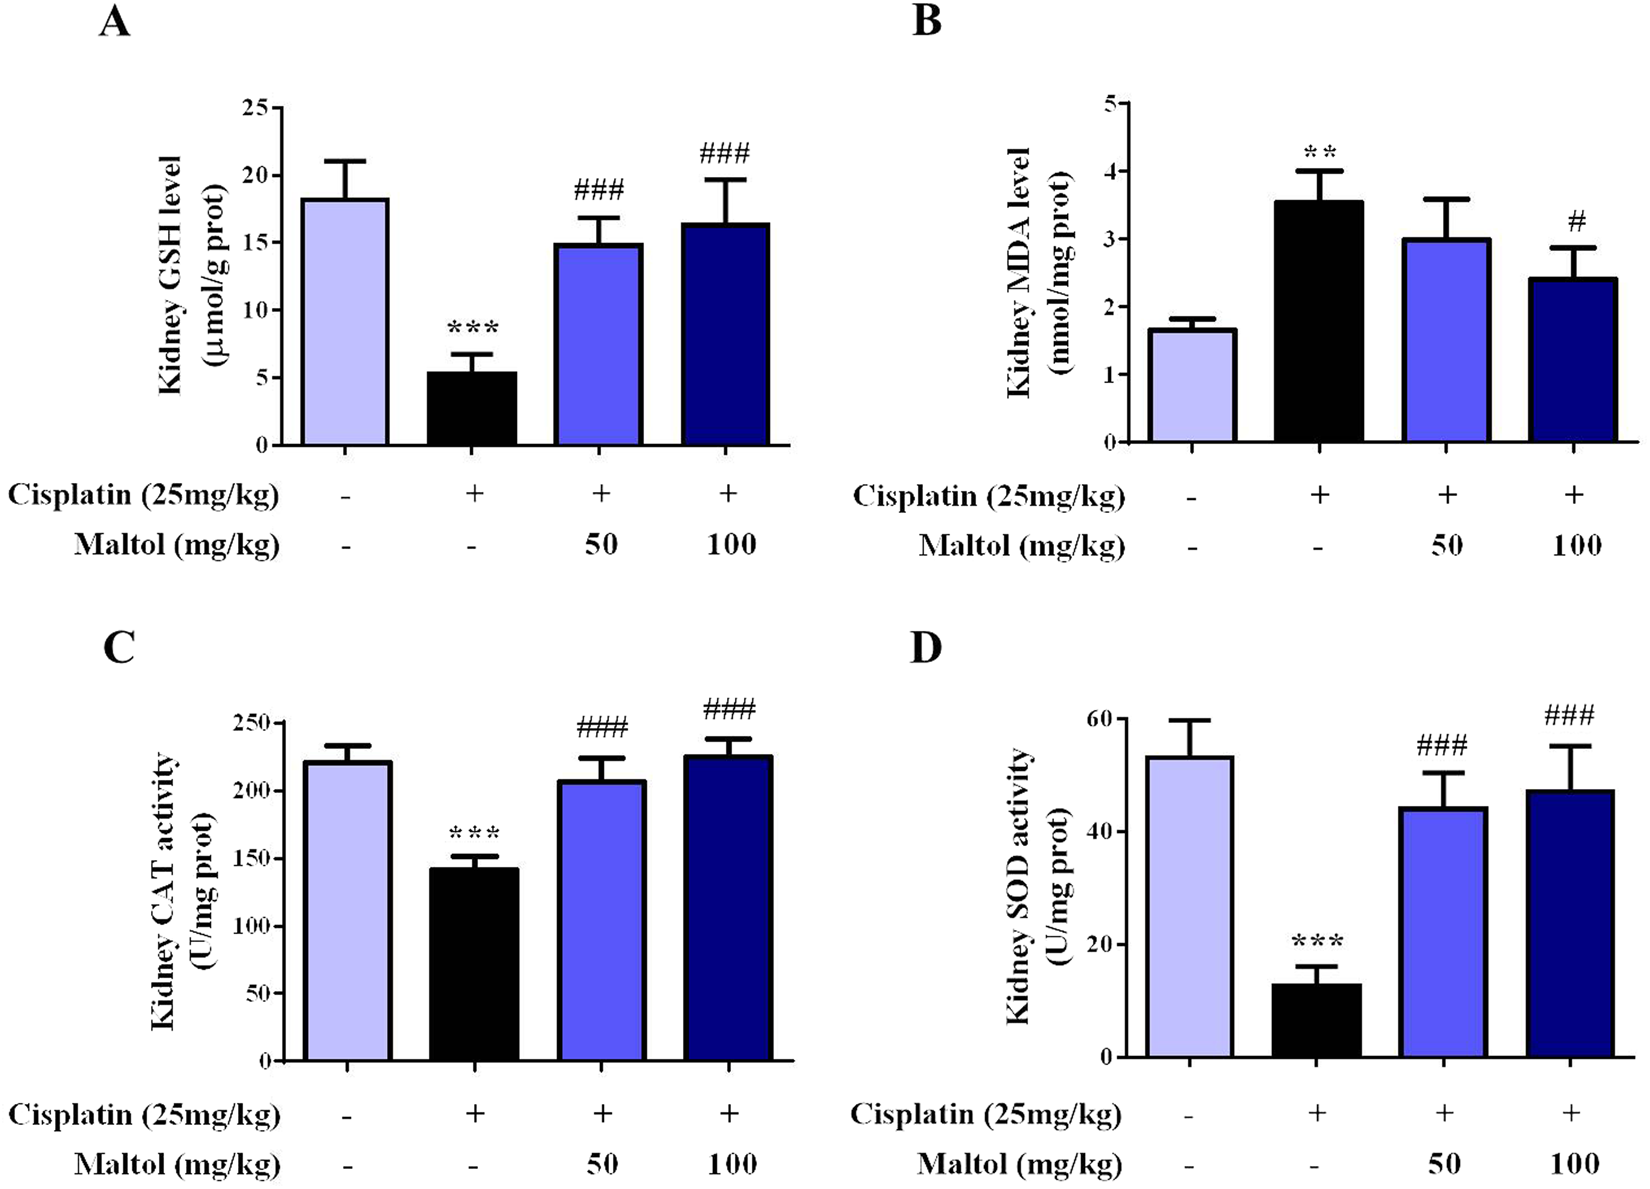 The protective effects of maltol on cisplatin-induced